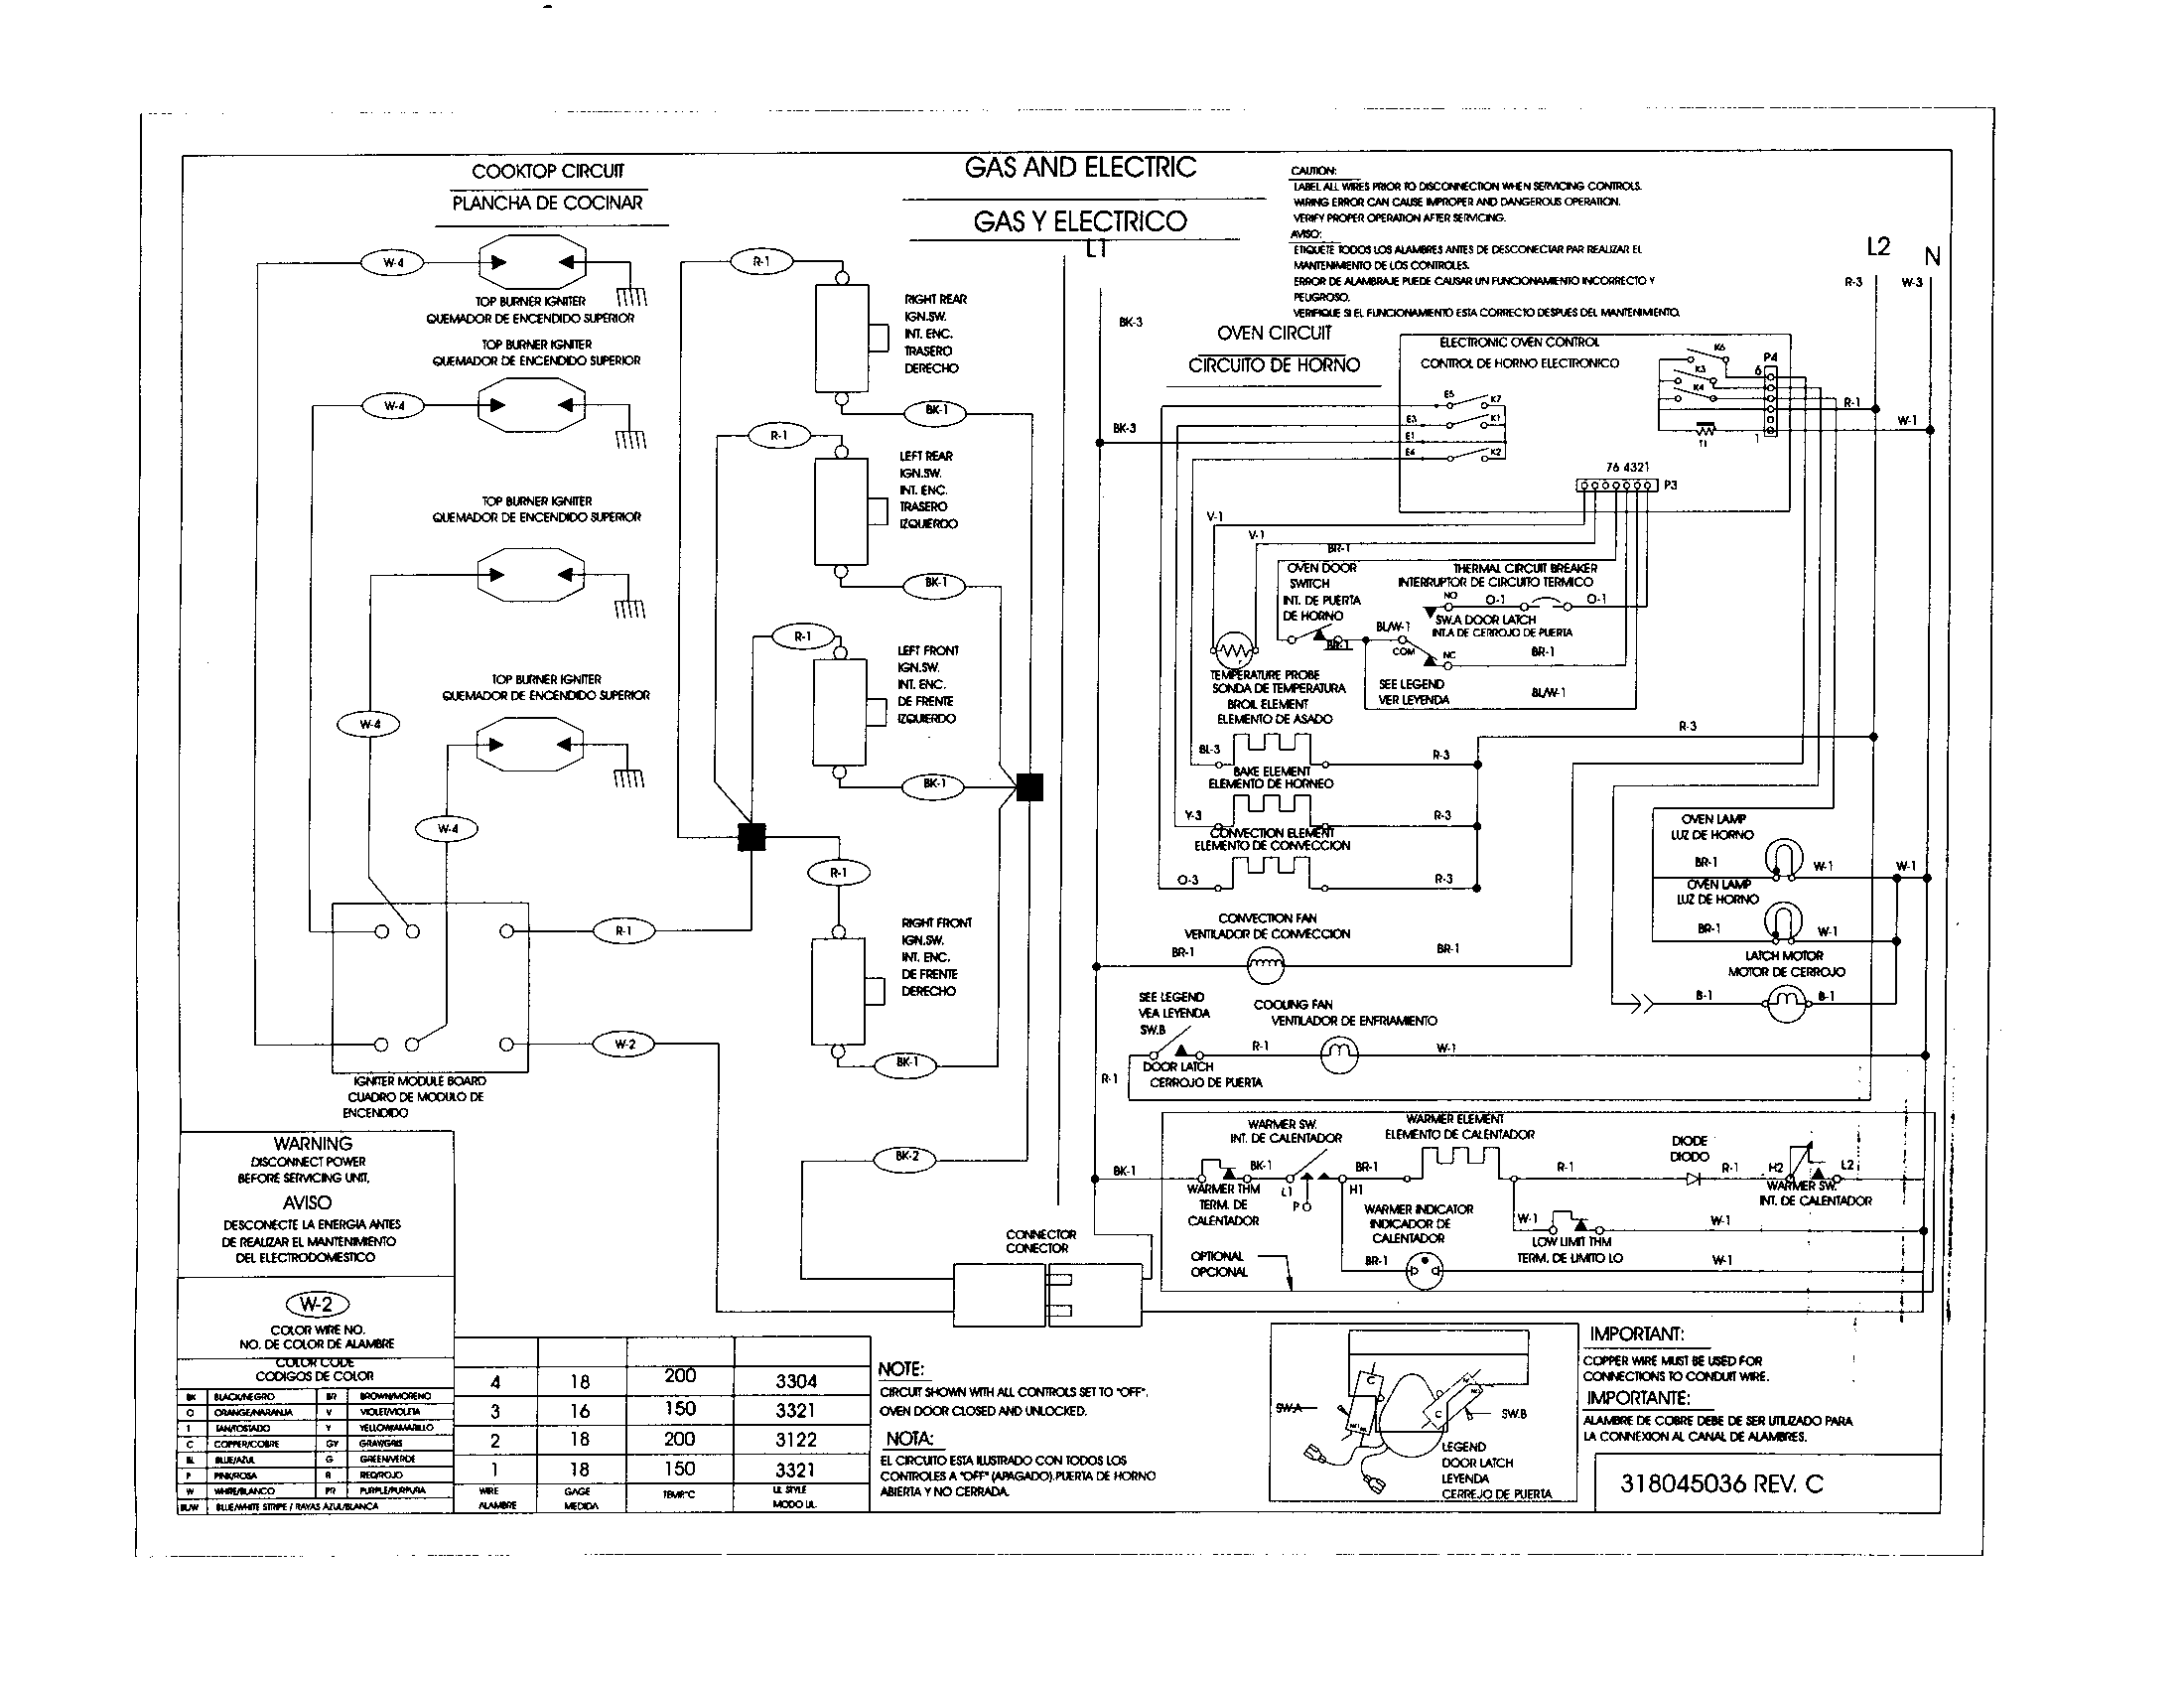 Ge Appliances Wiring Schematic - Ford F150 Window Wiring Diagram List Data  Schematicbig-data-2.artisticocatalano.it